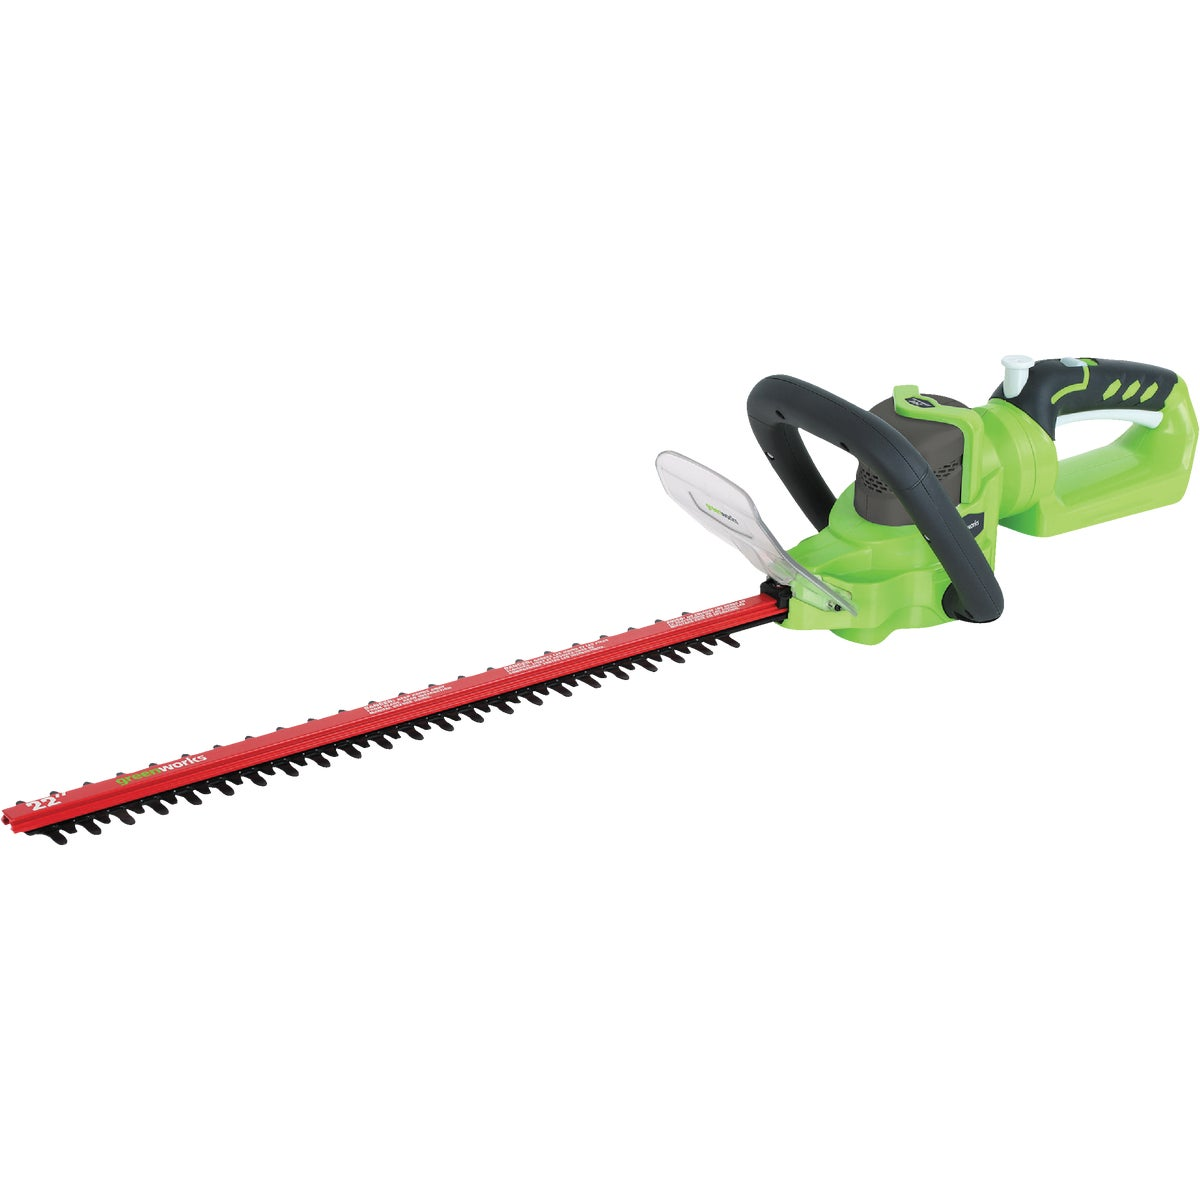 Greenworks G-Max 40V 24 In. Cordless Hedge Trimmer - Bare Tool, 22332